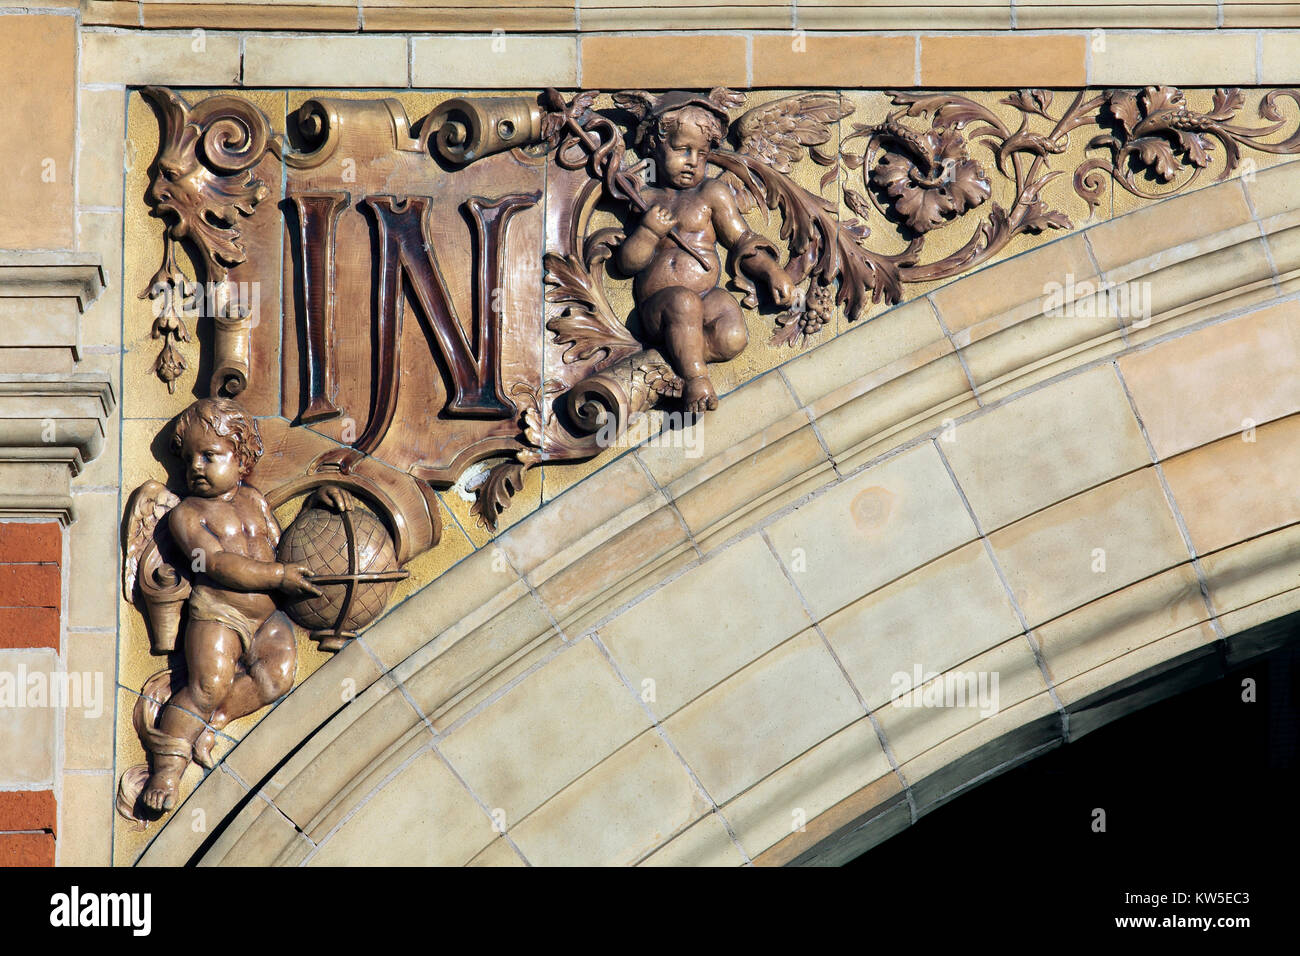 A close up of the flamboyant detailing on an archway spandrel on the London Road elevation of Leicester station. - Stock Image